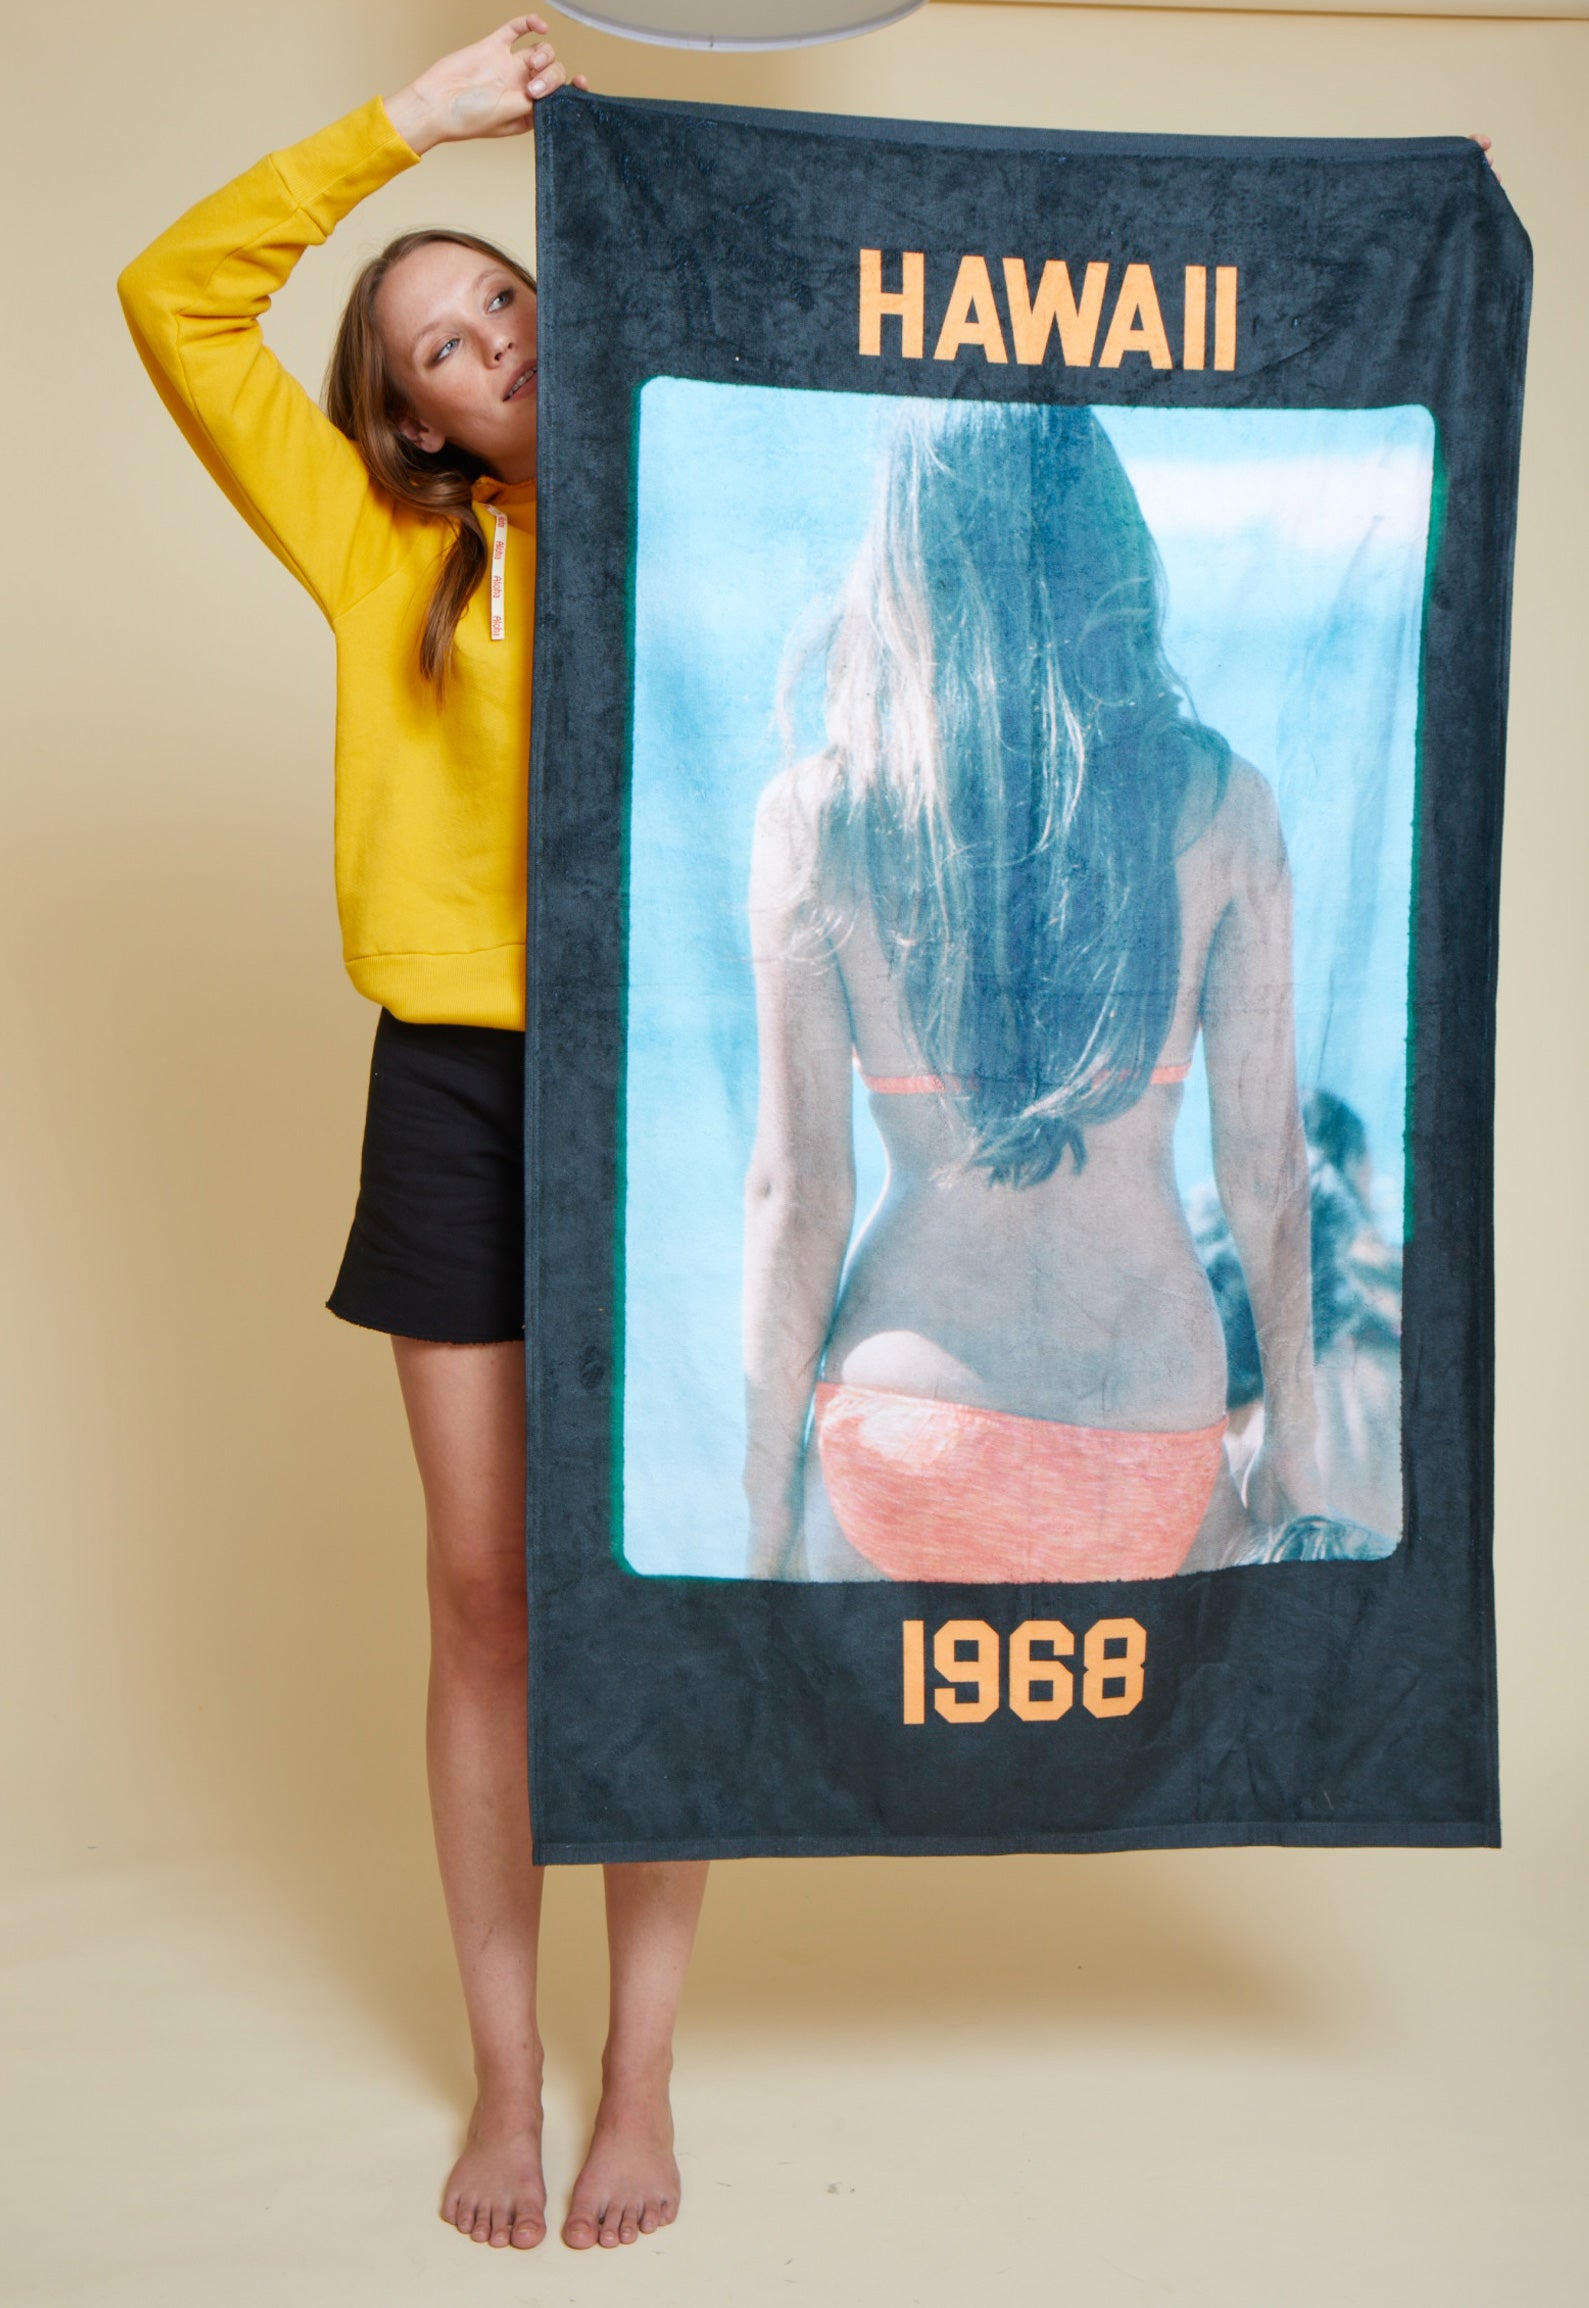 HAWAII 1968 towel